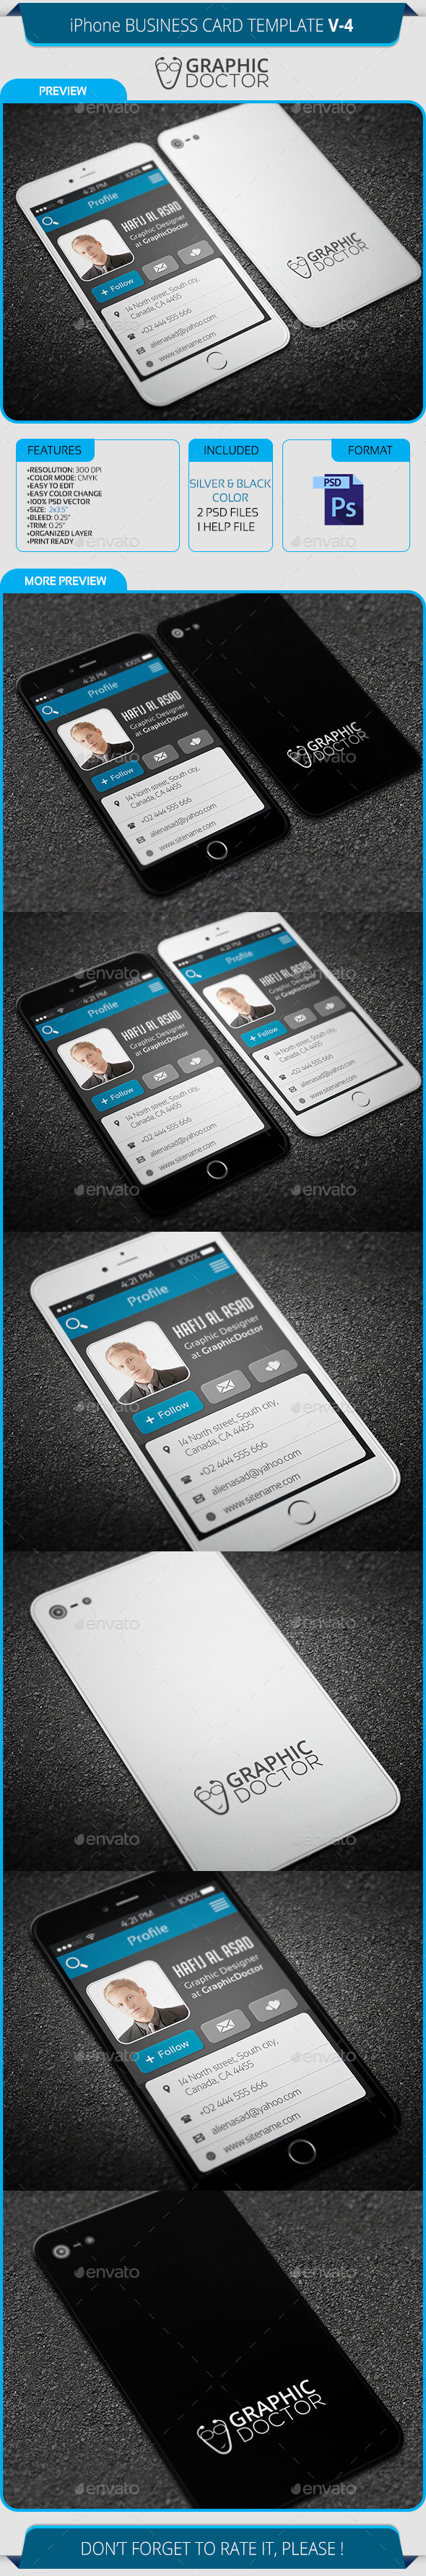 Real Object Business Card Templates From Graphicriver for Iphone Business Card Template